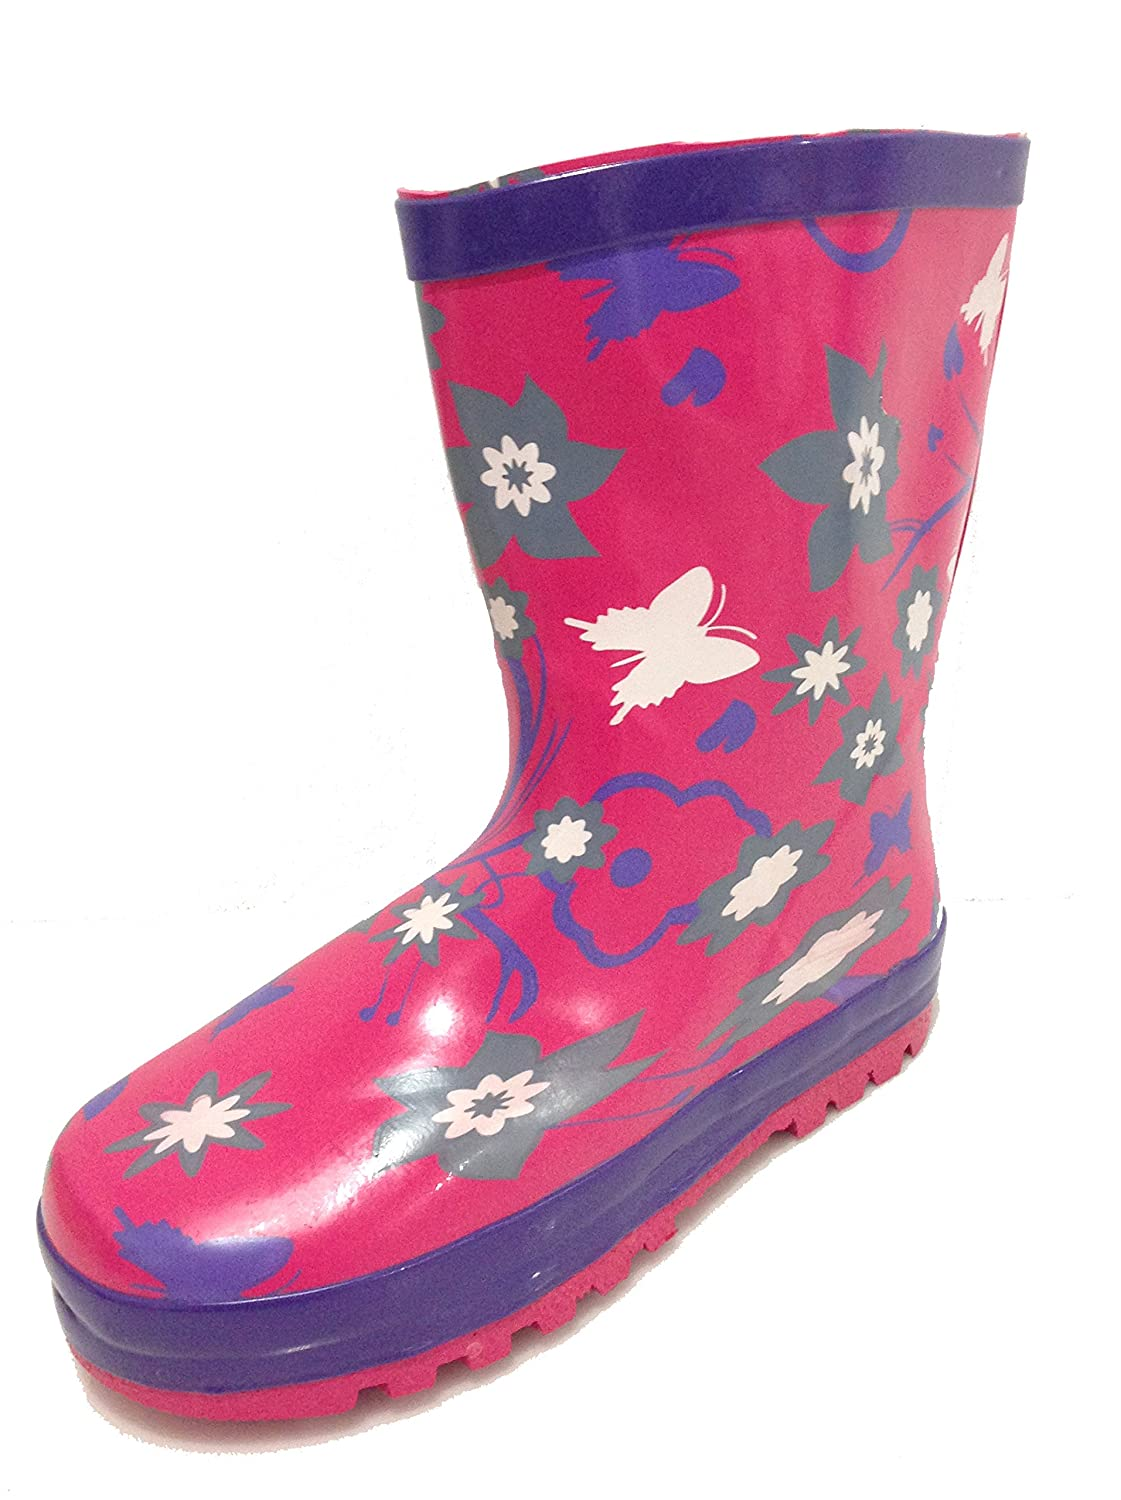 OAR Toddler & Little Girls Pink Hippie Flower Rain Boots w/ Lining oar toddler